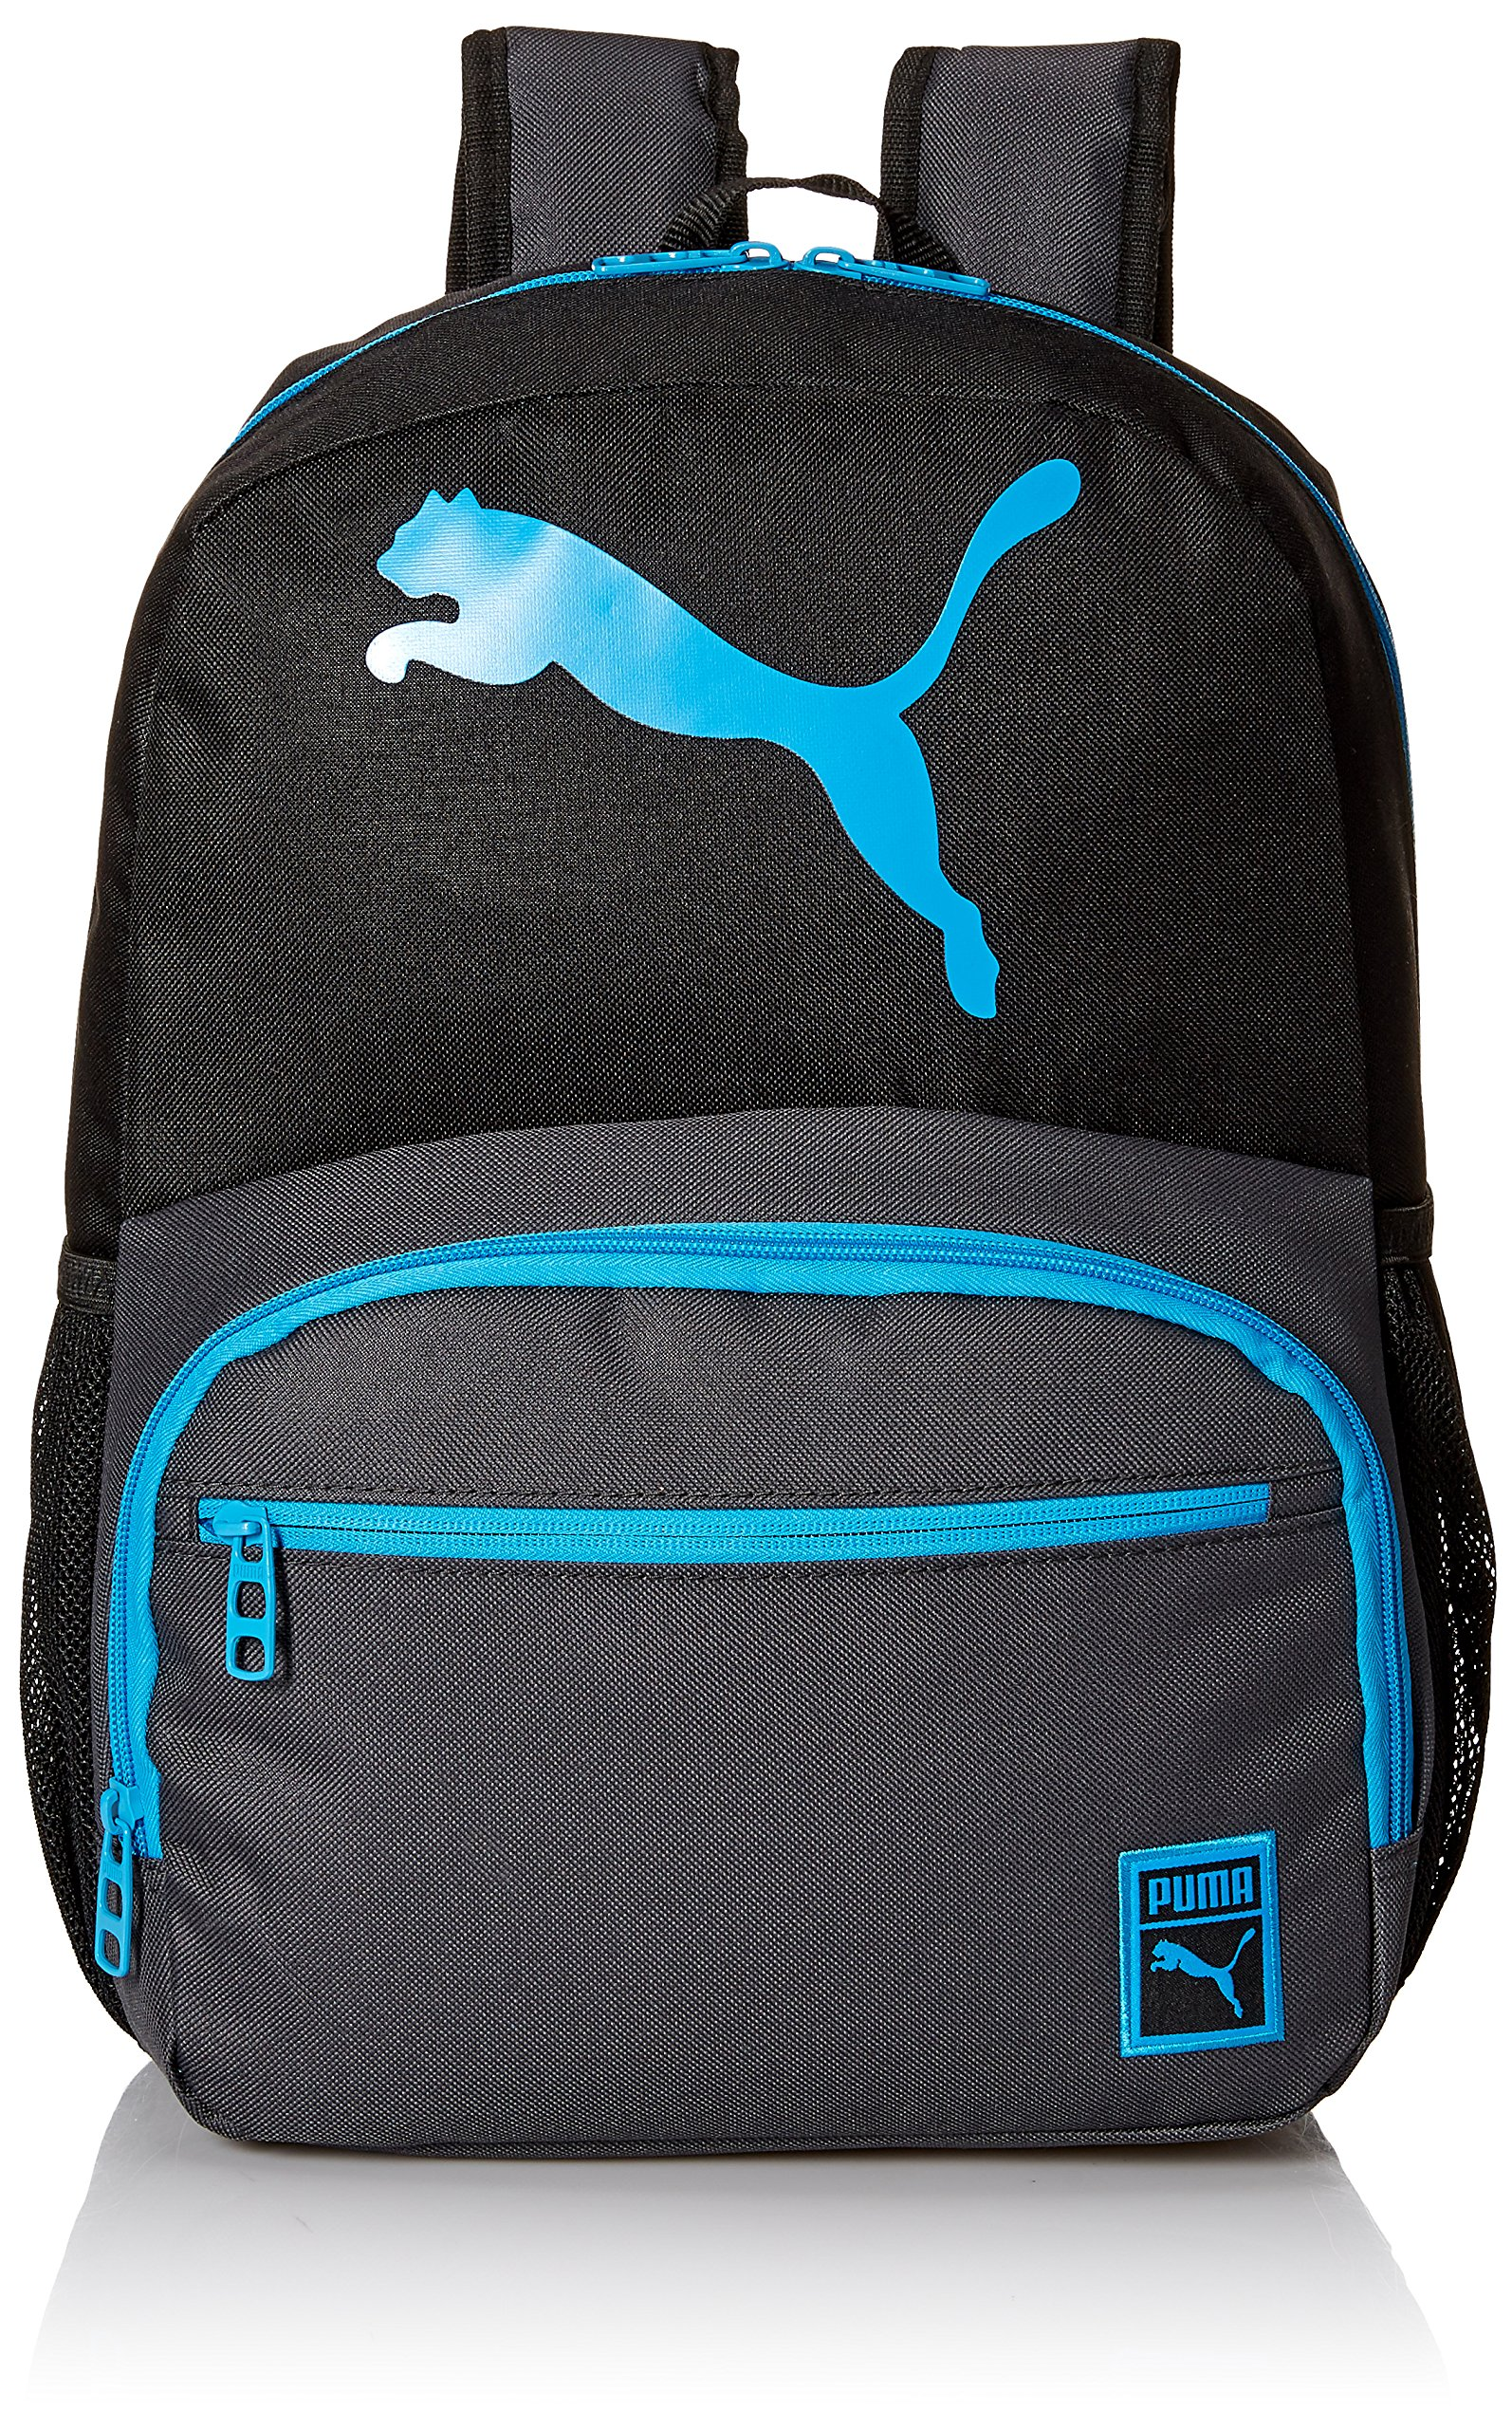 PUMA Boys' Little Backpacks and Lunch Boxes, Black/Blue, Youth by PUMA